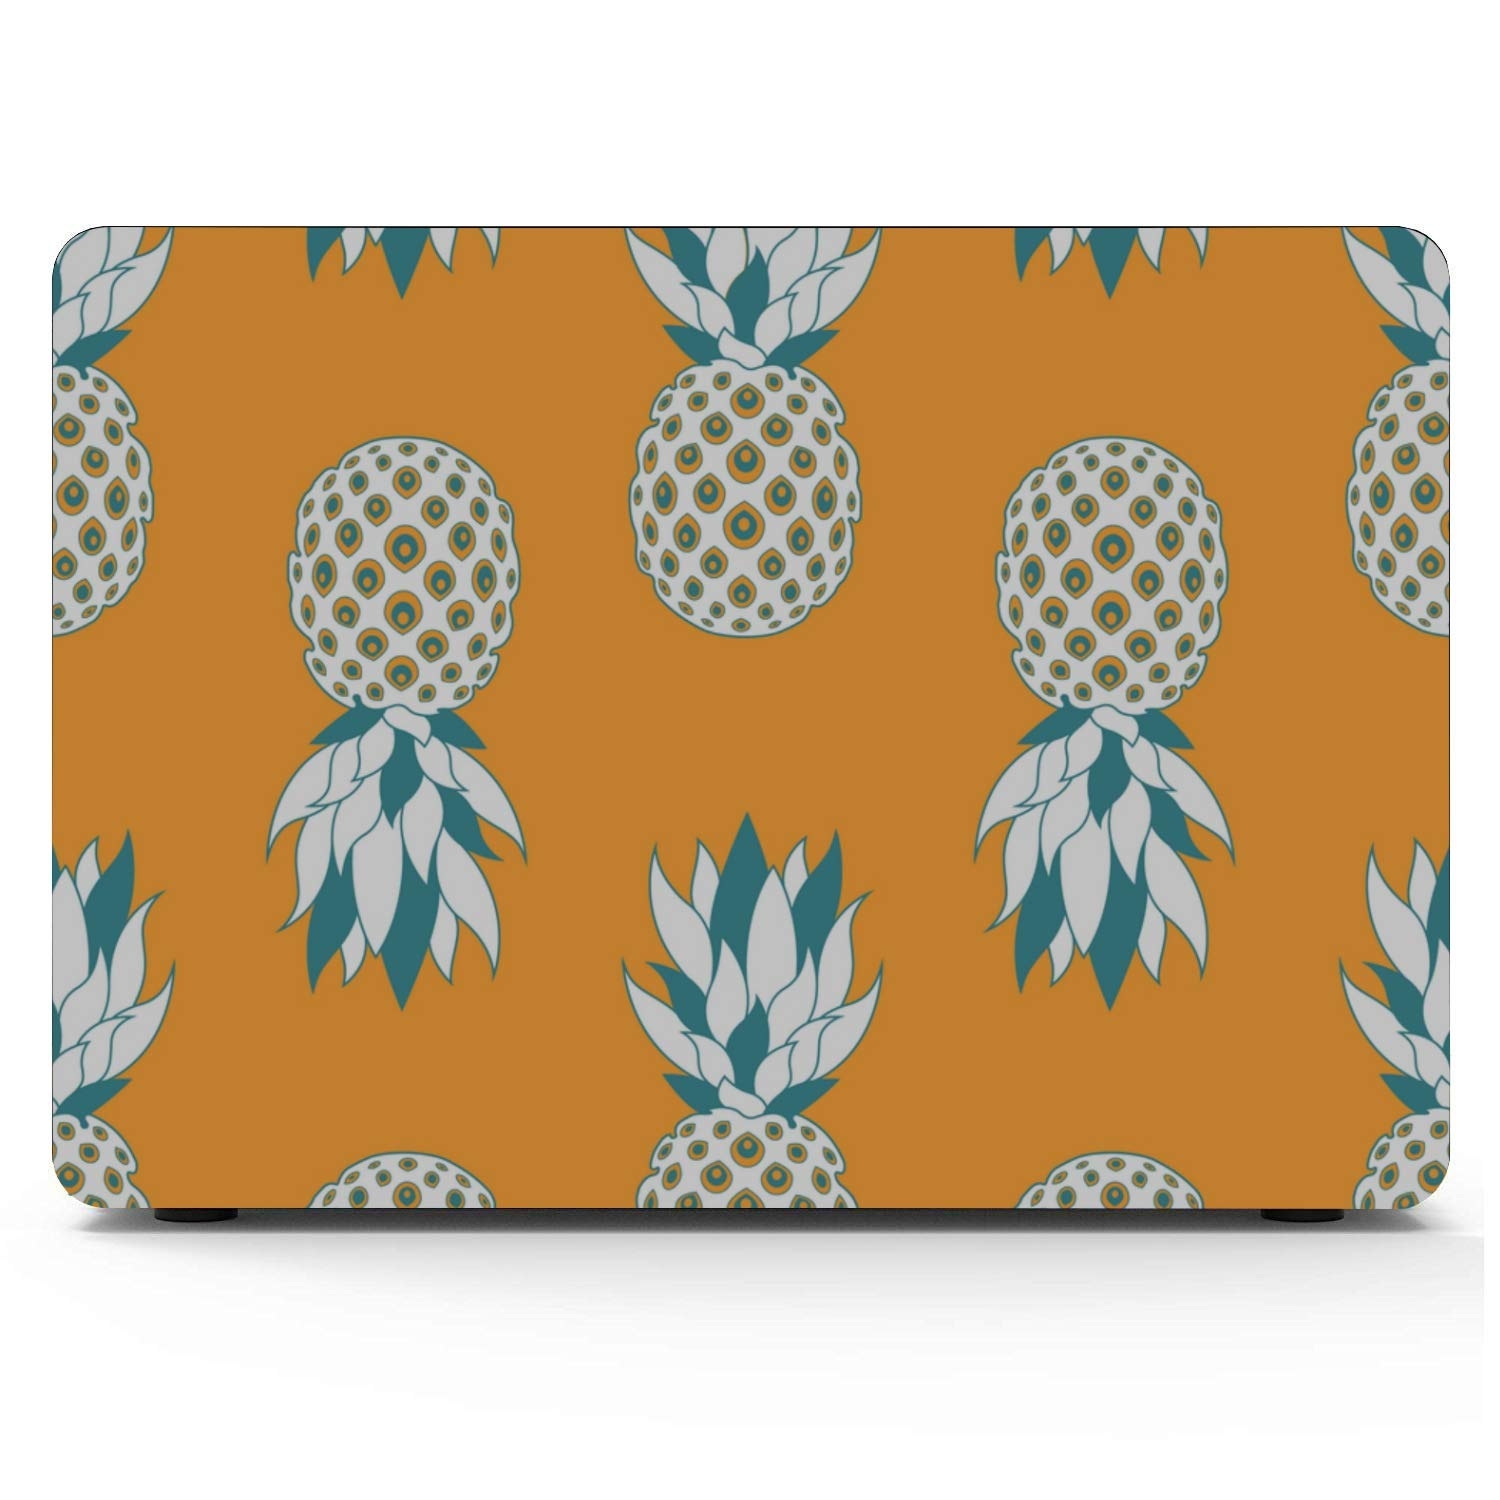 Laptop Hard Cases Summer Sweet Cute Fruit Pineapple Plastic Hard Shell Compatible Mac Air 11 Pro 13 15 MacBook Air Protective Case Protection for MacBook 2016-2019 Version